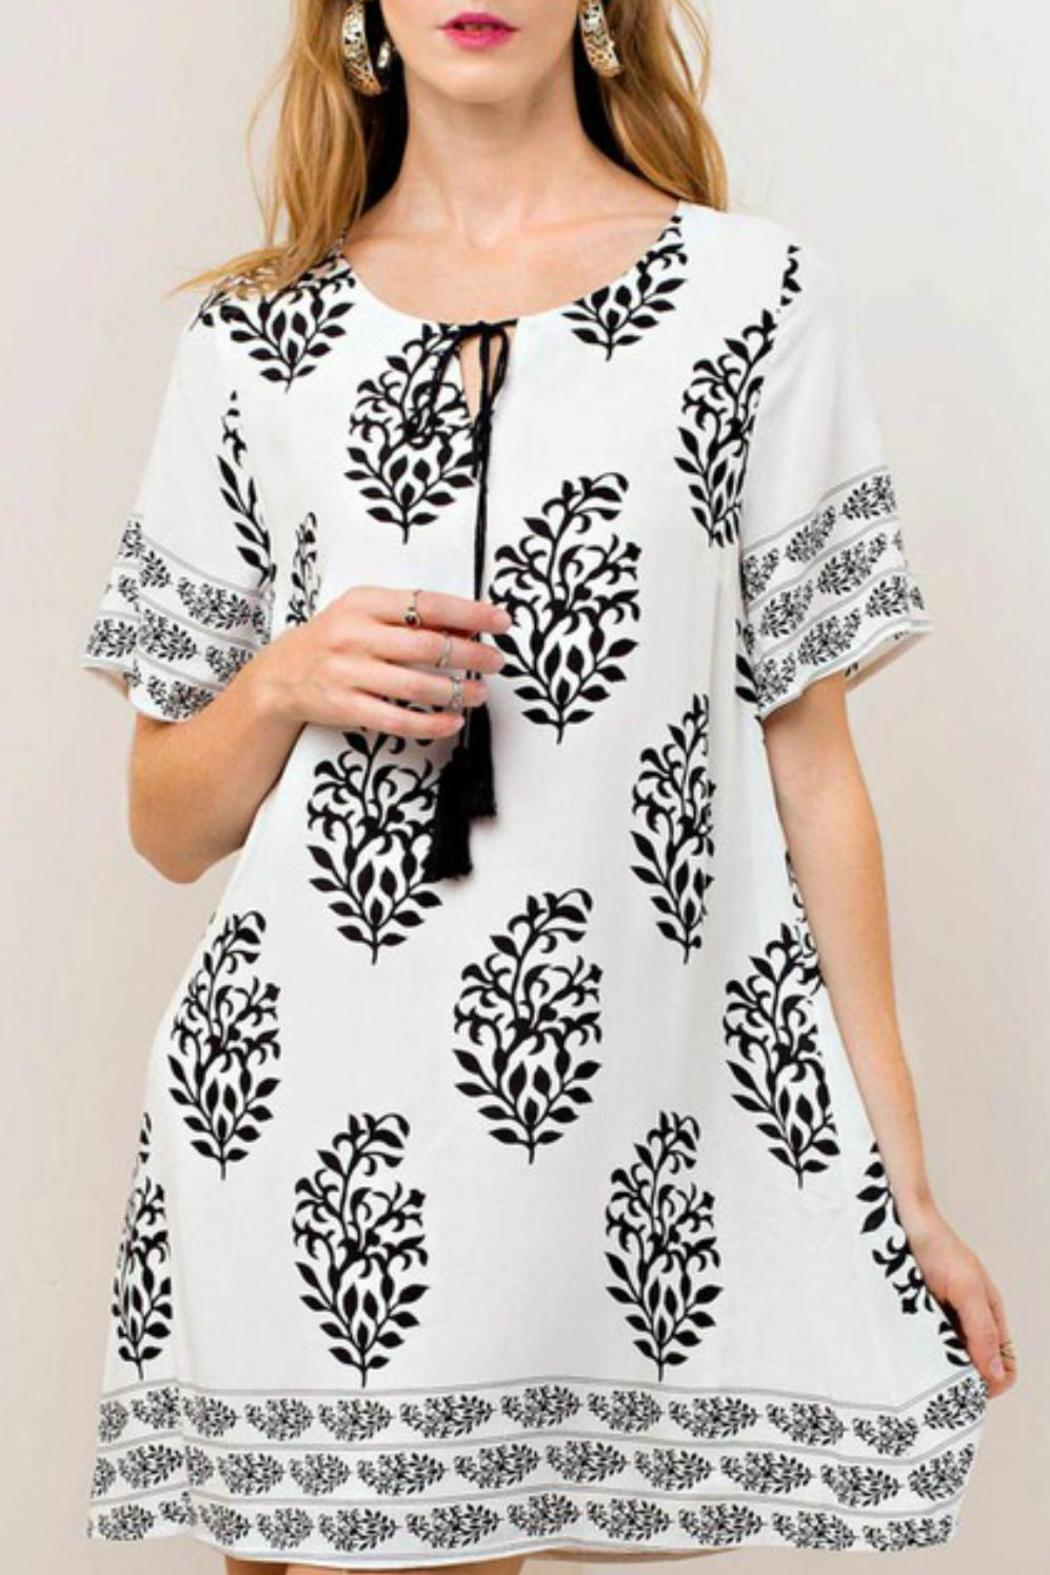 KORI AMERICA Woven Print Dress - Main Image